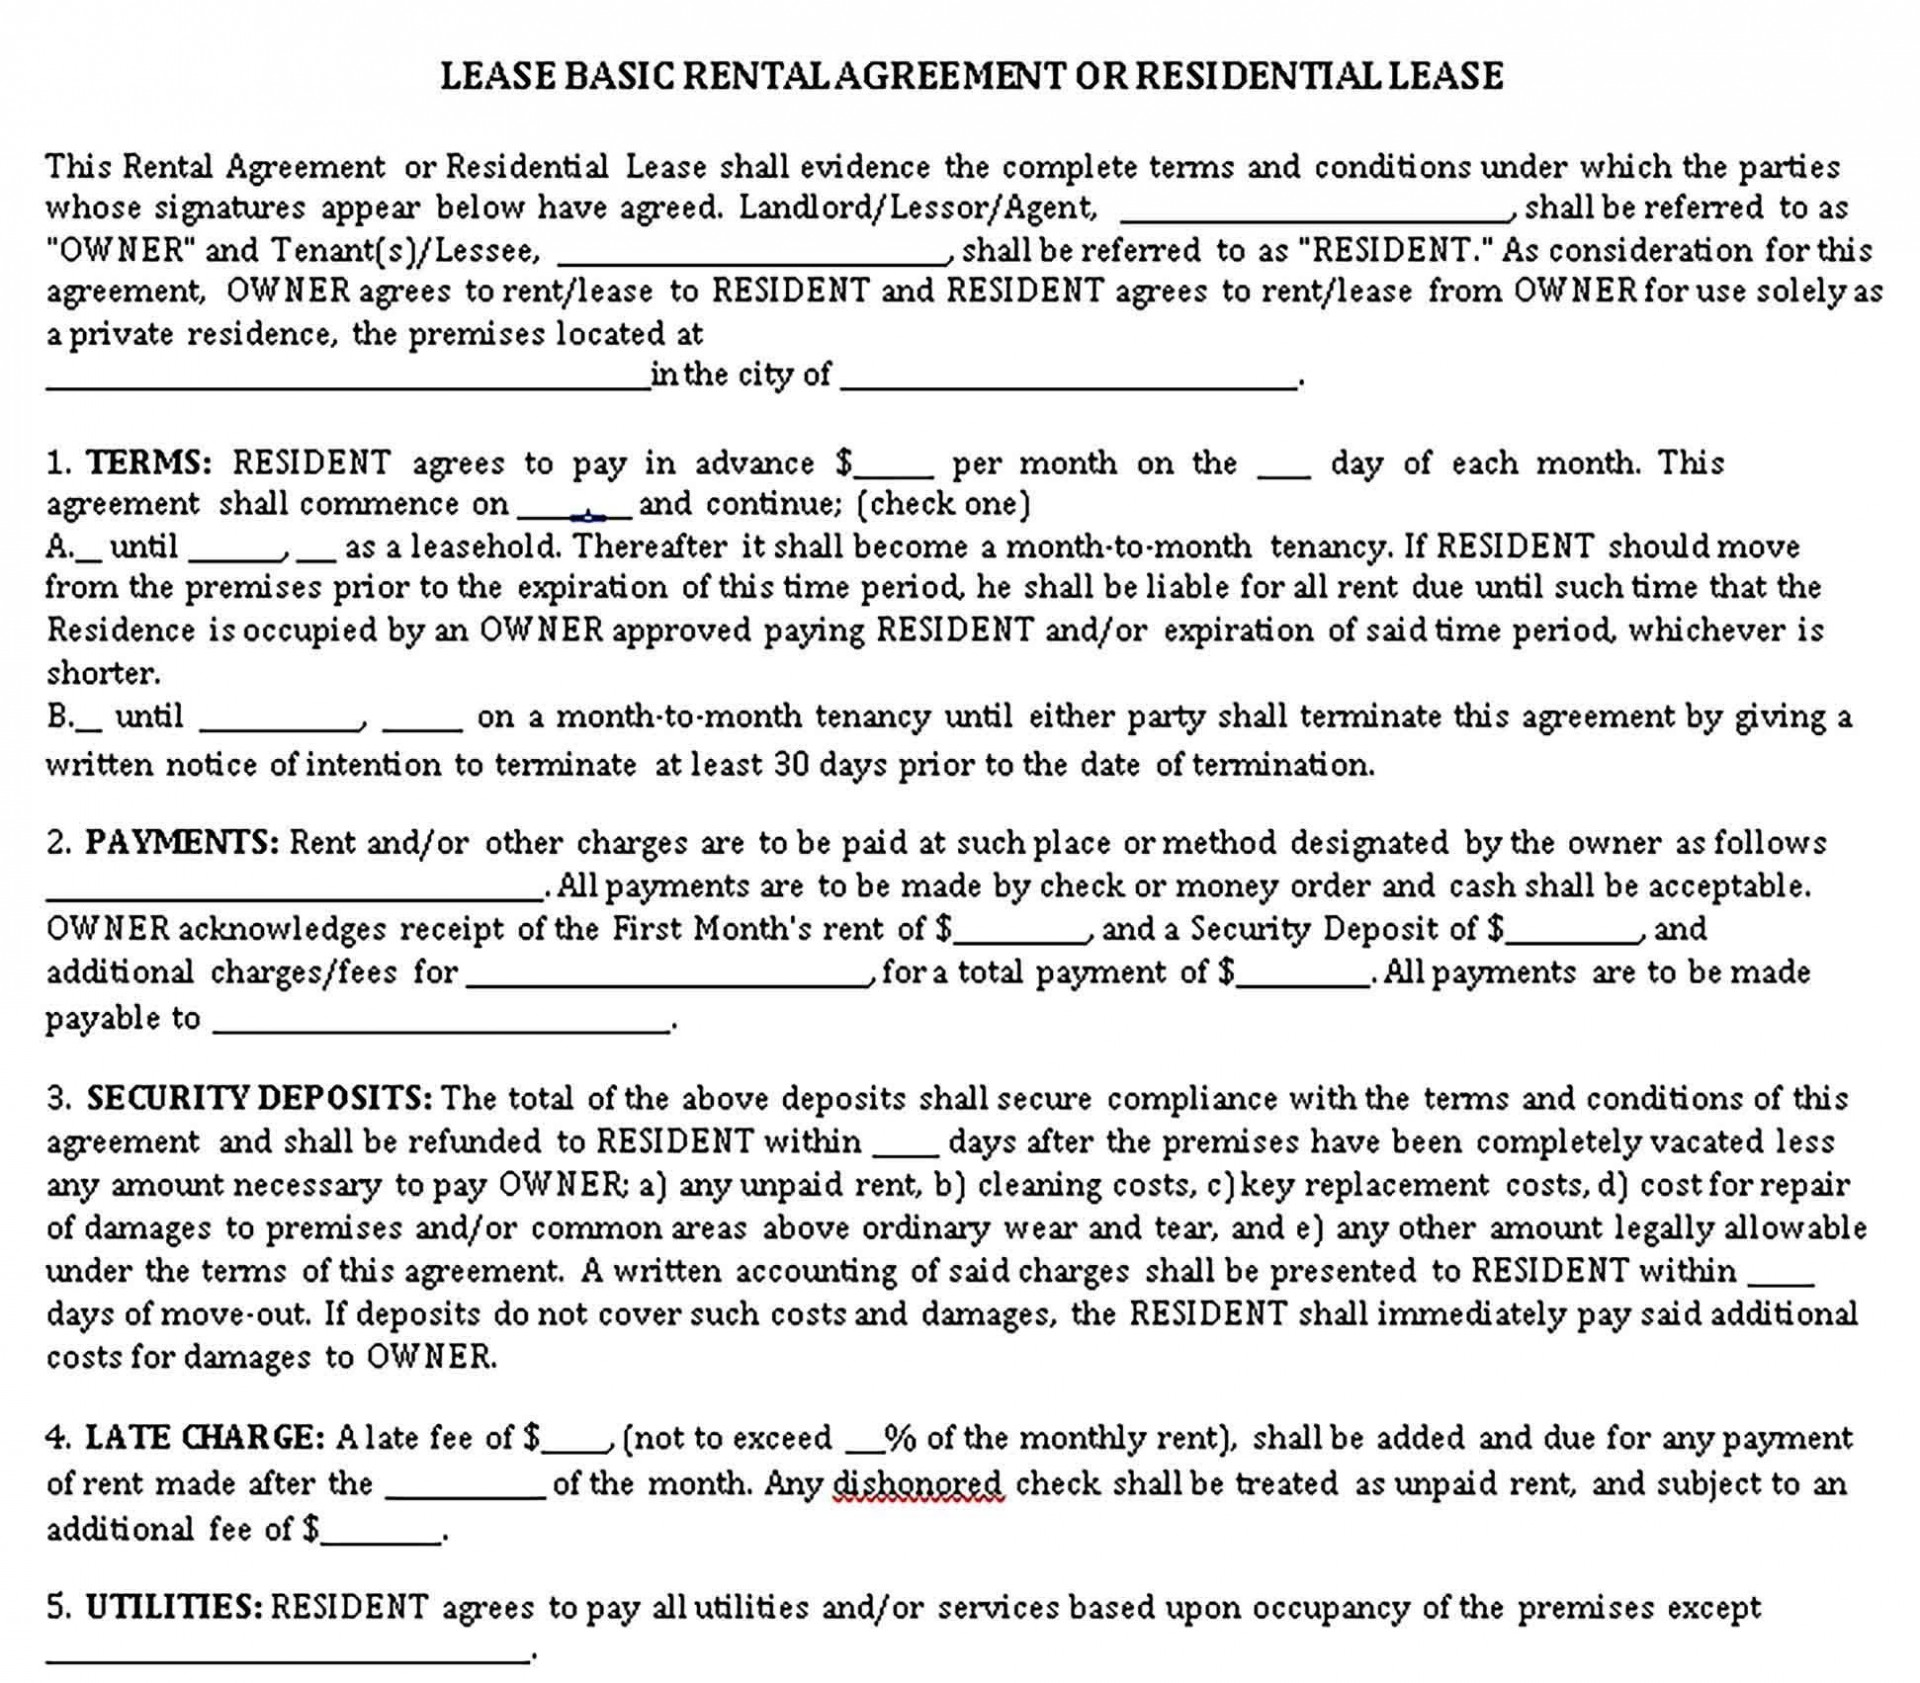 001 Fascinating Renter Lease Agreement Template Sample  Apartment Form Early Termination Of By Tenant South Africa Free1920